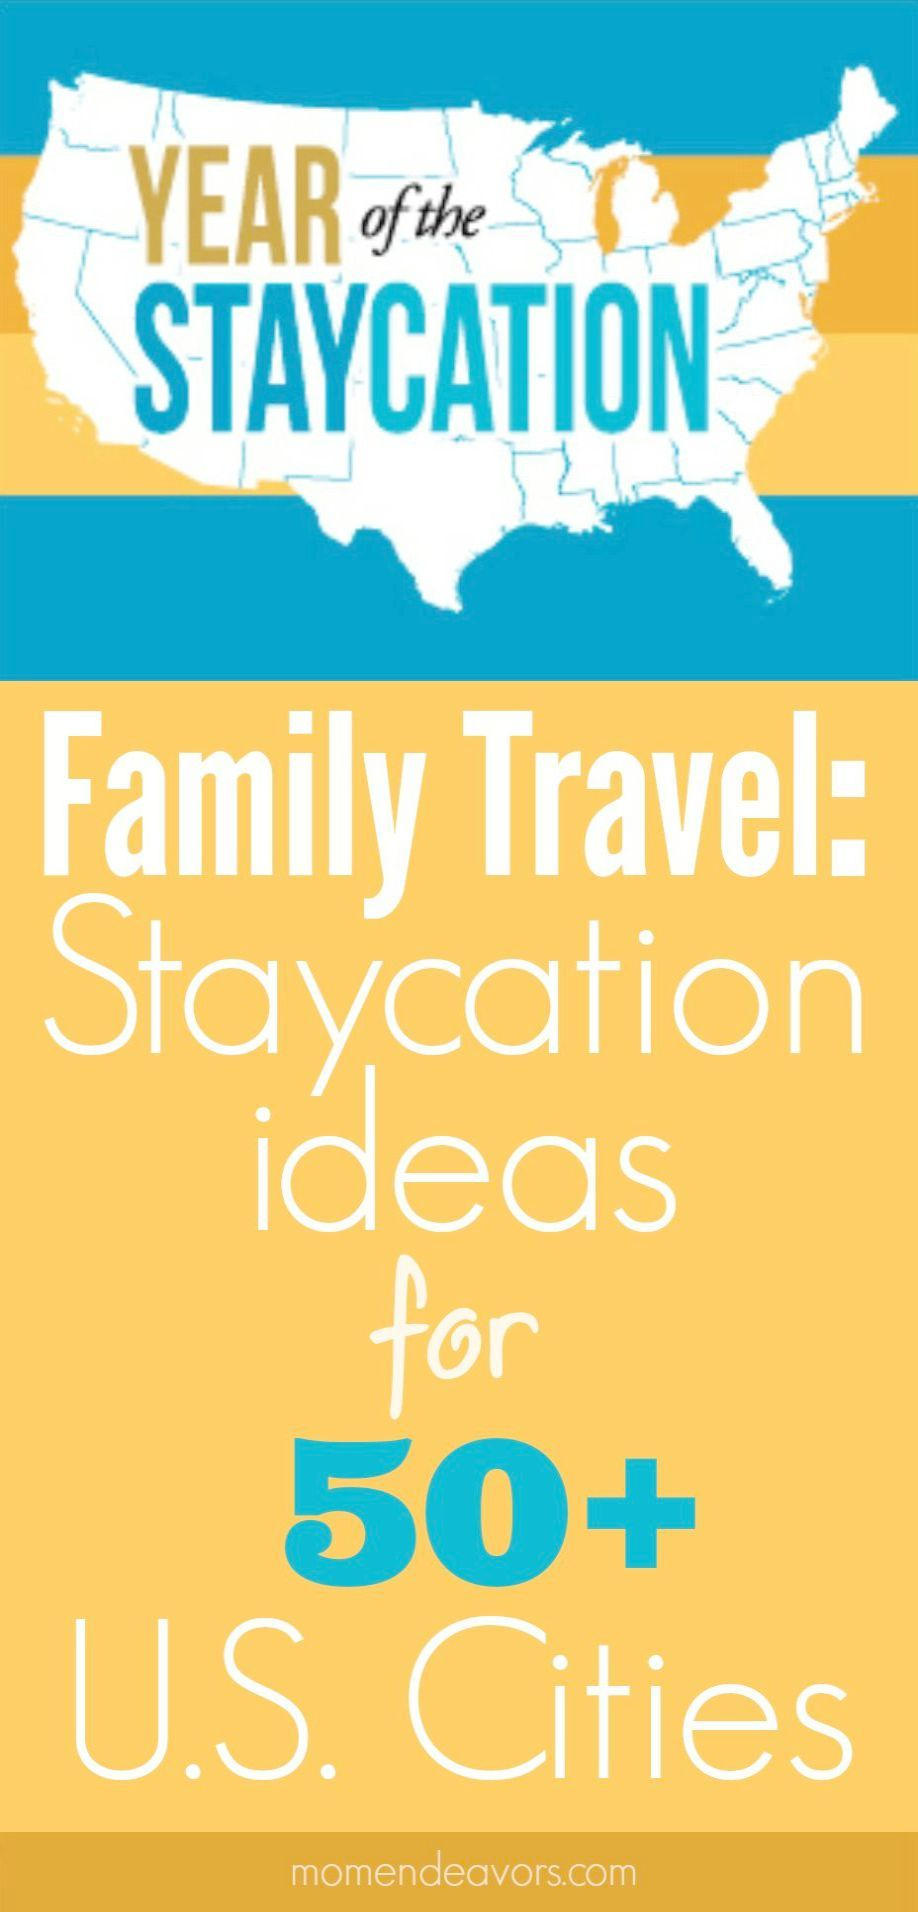 Travelers marcy and travel agency online family vacation